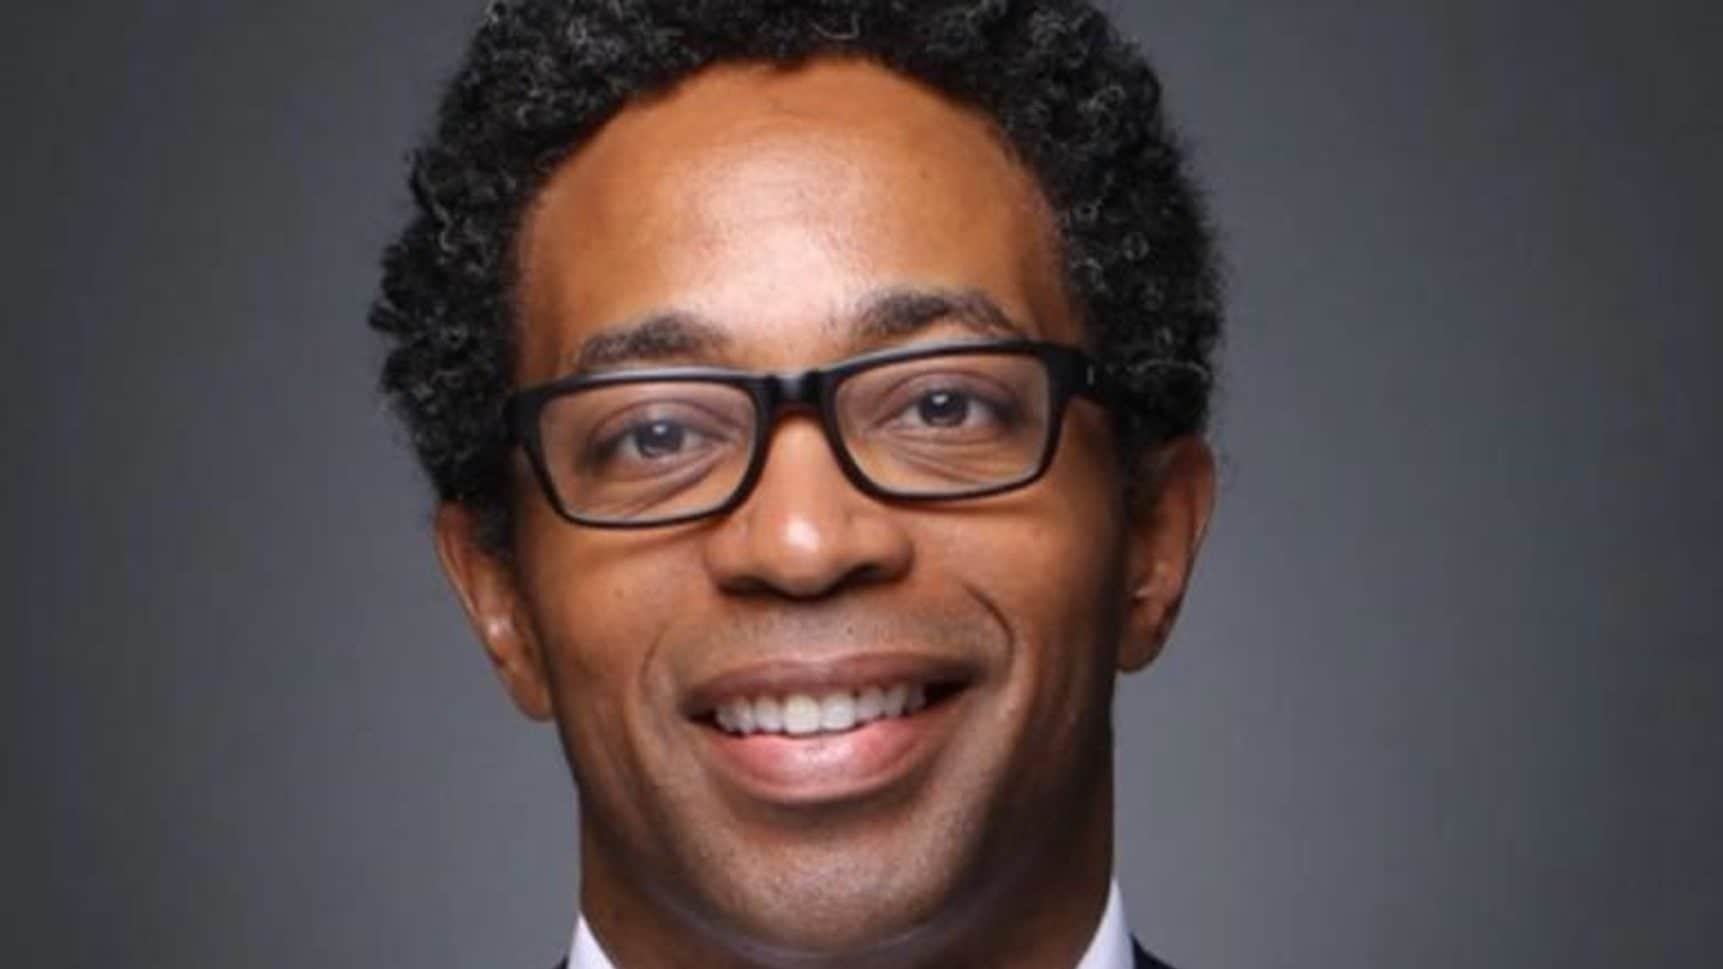 new st louis county prosecutor wesley bell fires assistant